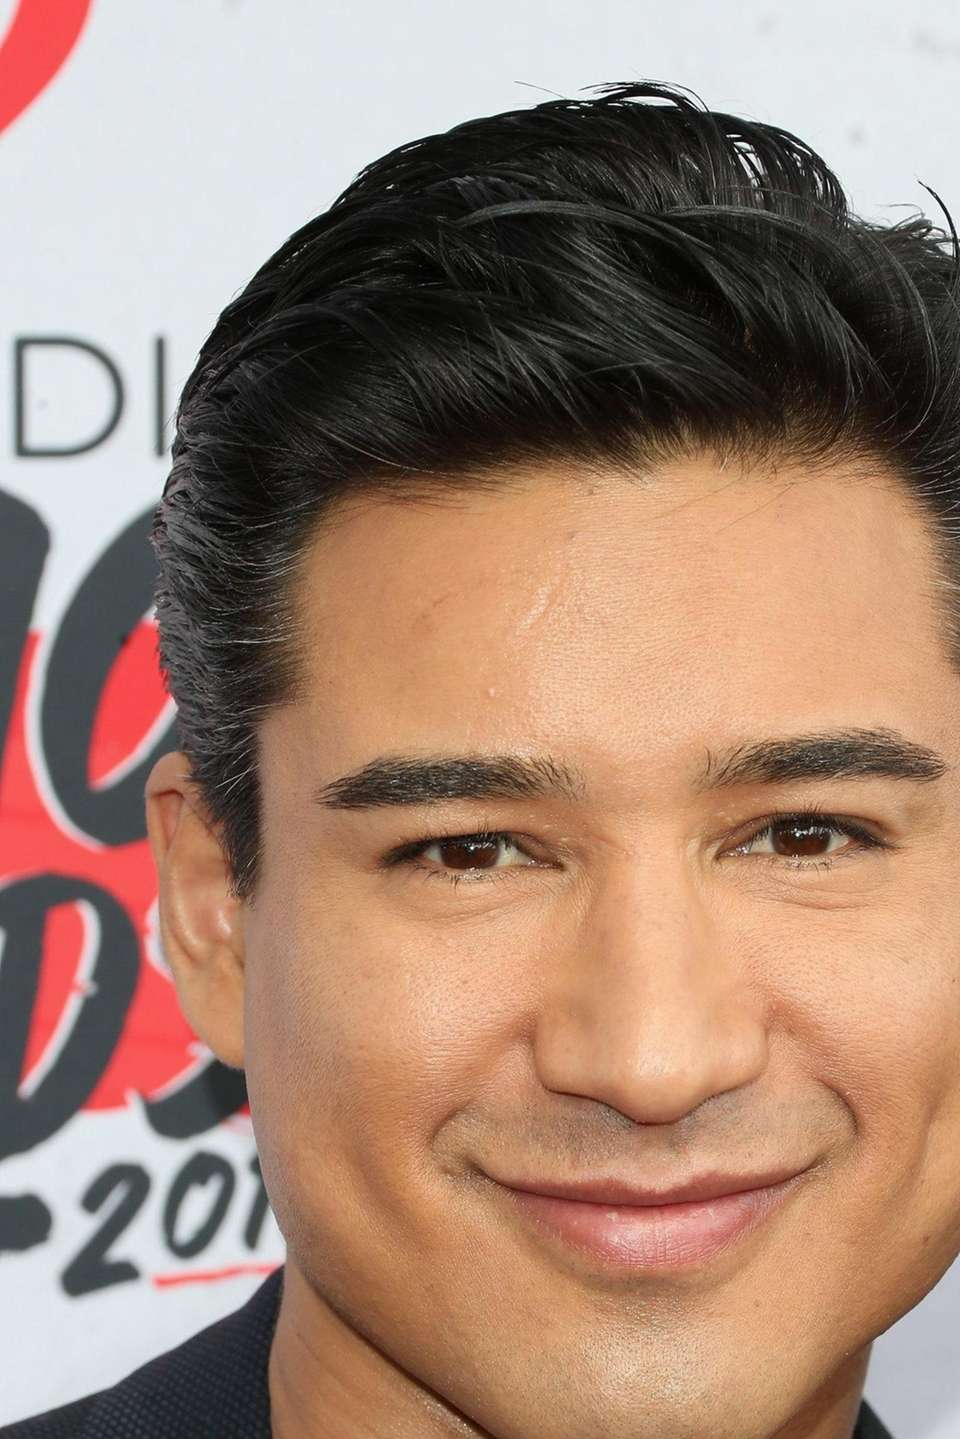 Mario Lopez was born on Oct. 10, 1973.